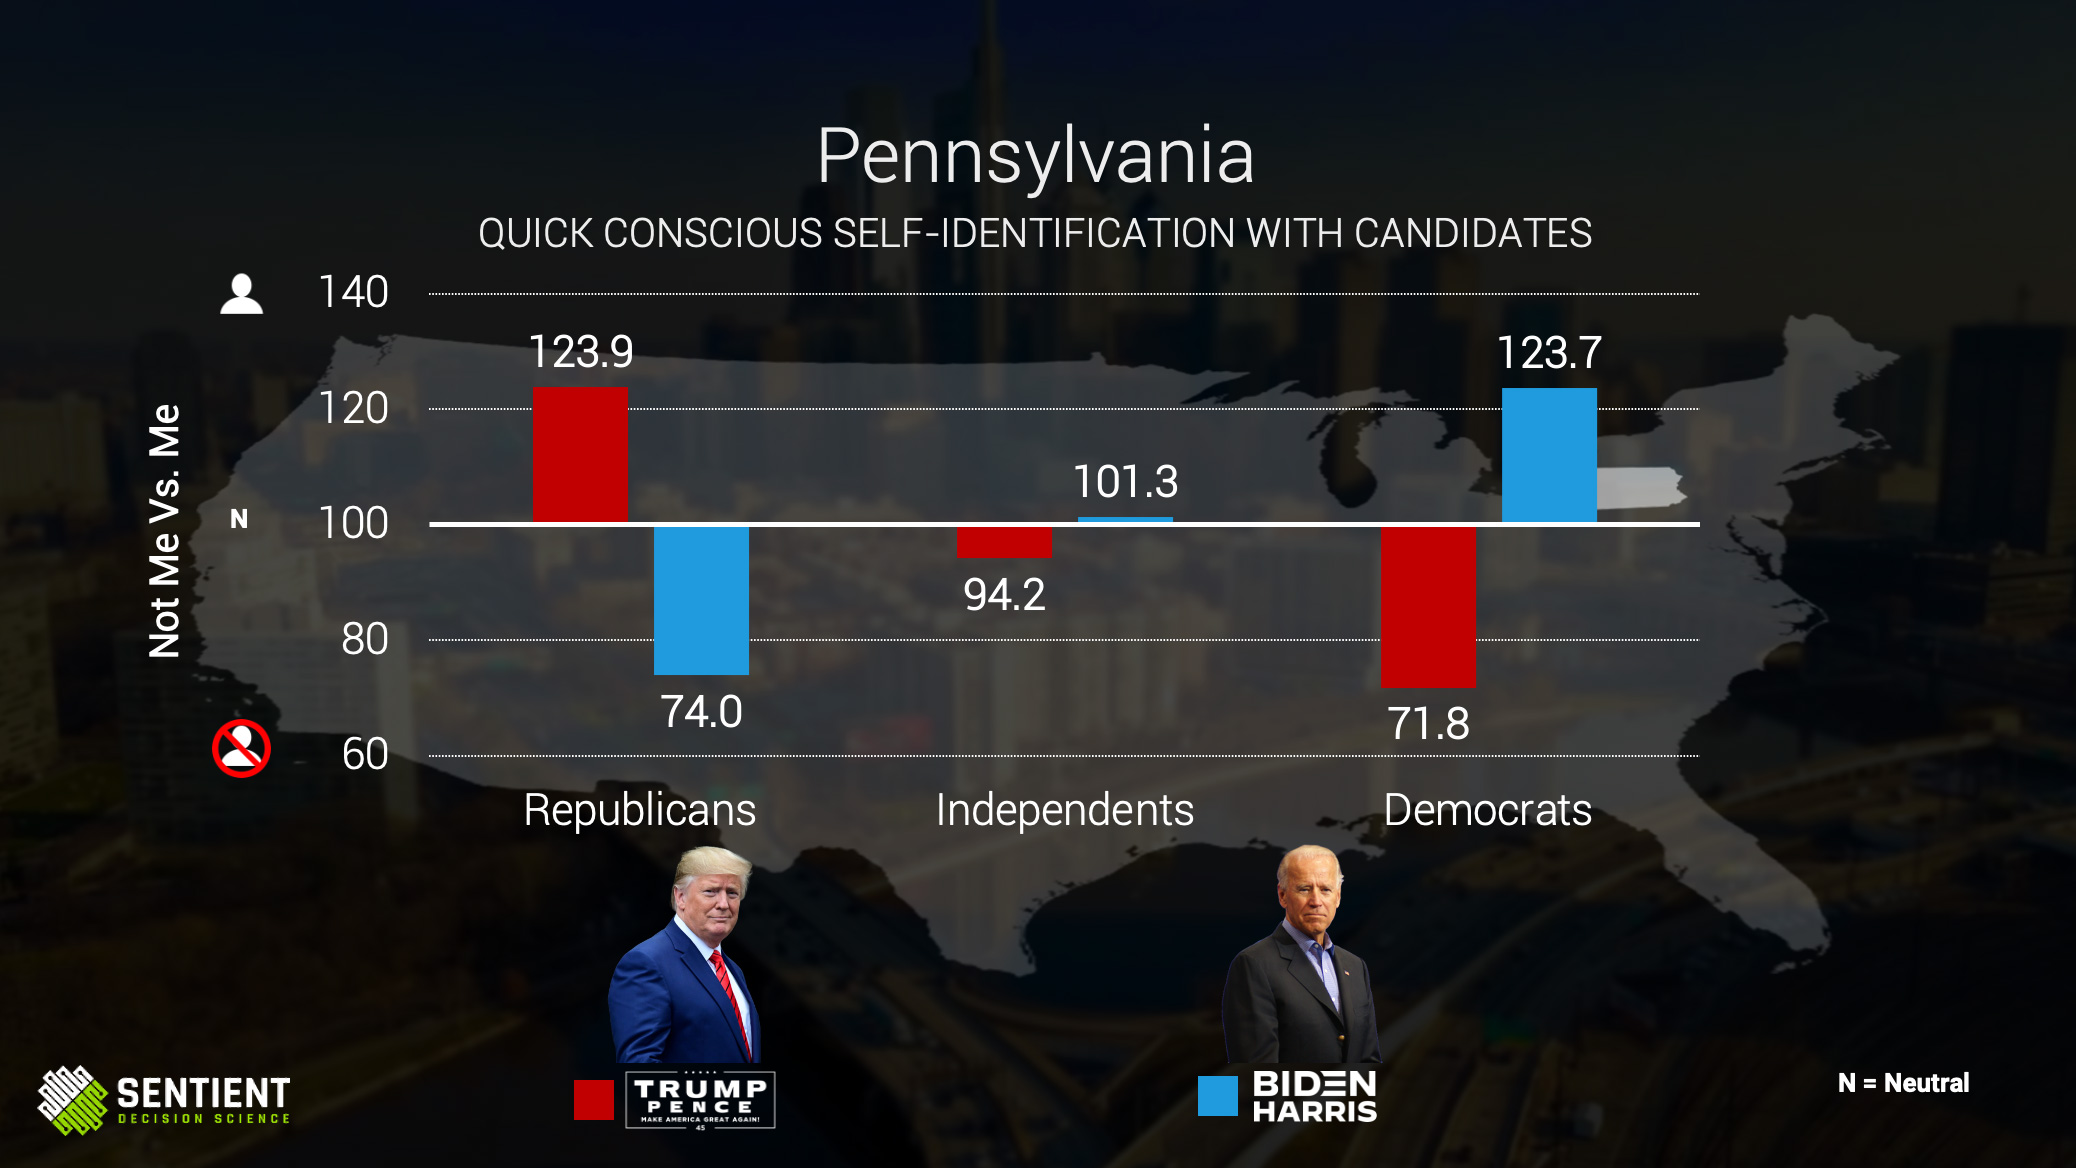 Pennsylvania Quick Conscious Self-ID of Candidates